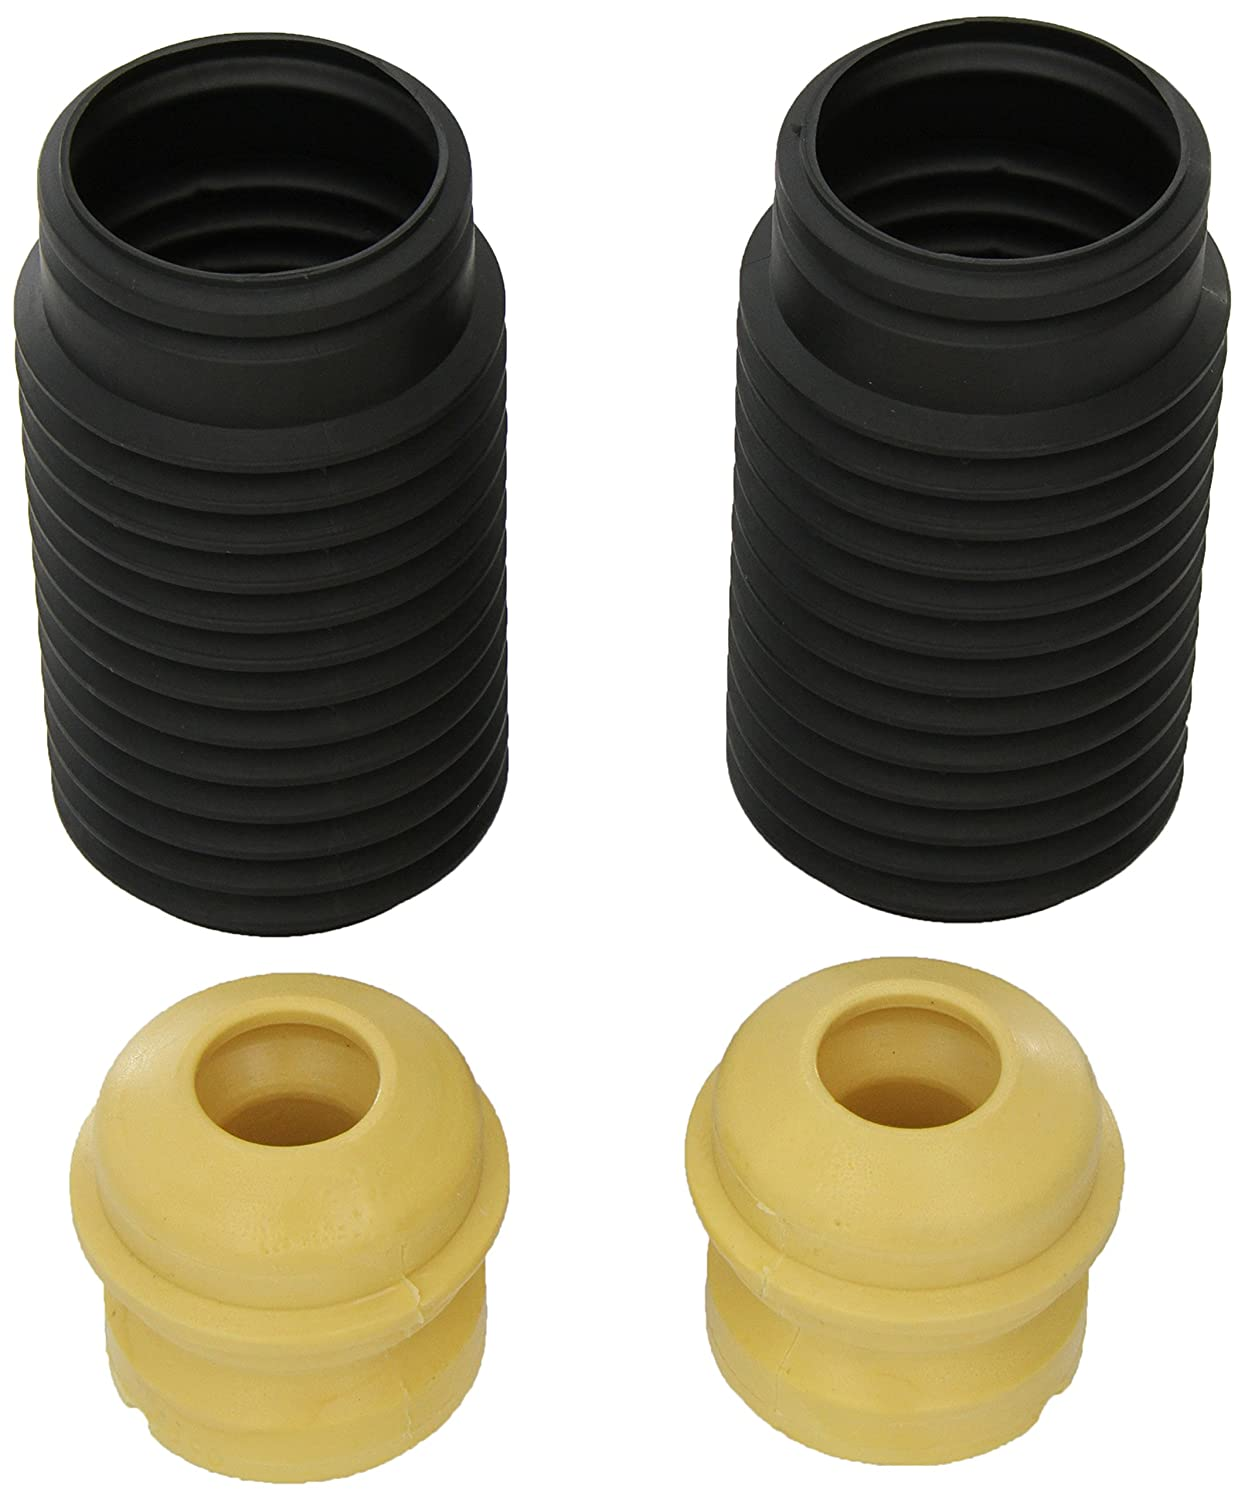 MAPCO 34902 Shock Absorber Dust Cover Kit